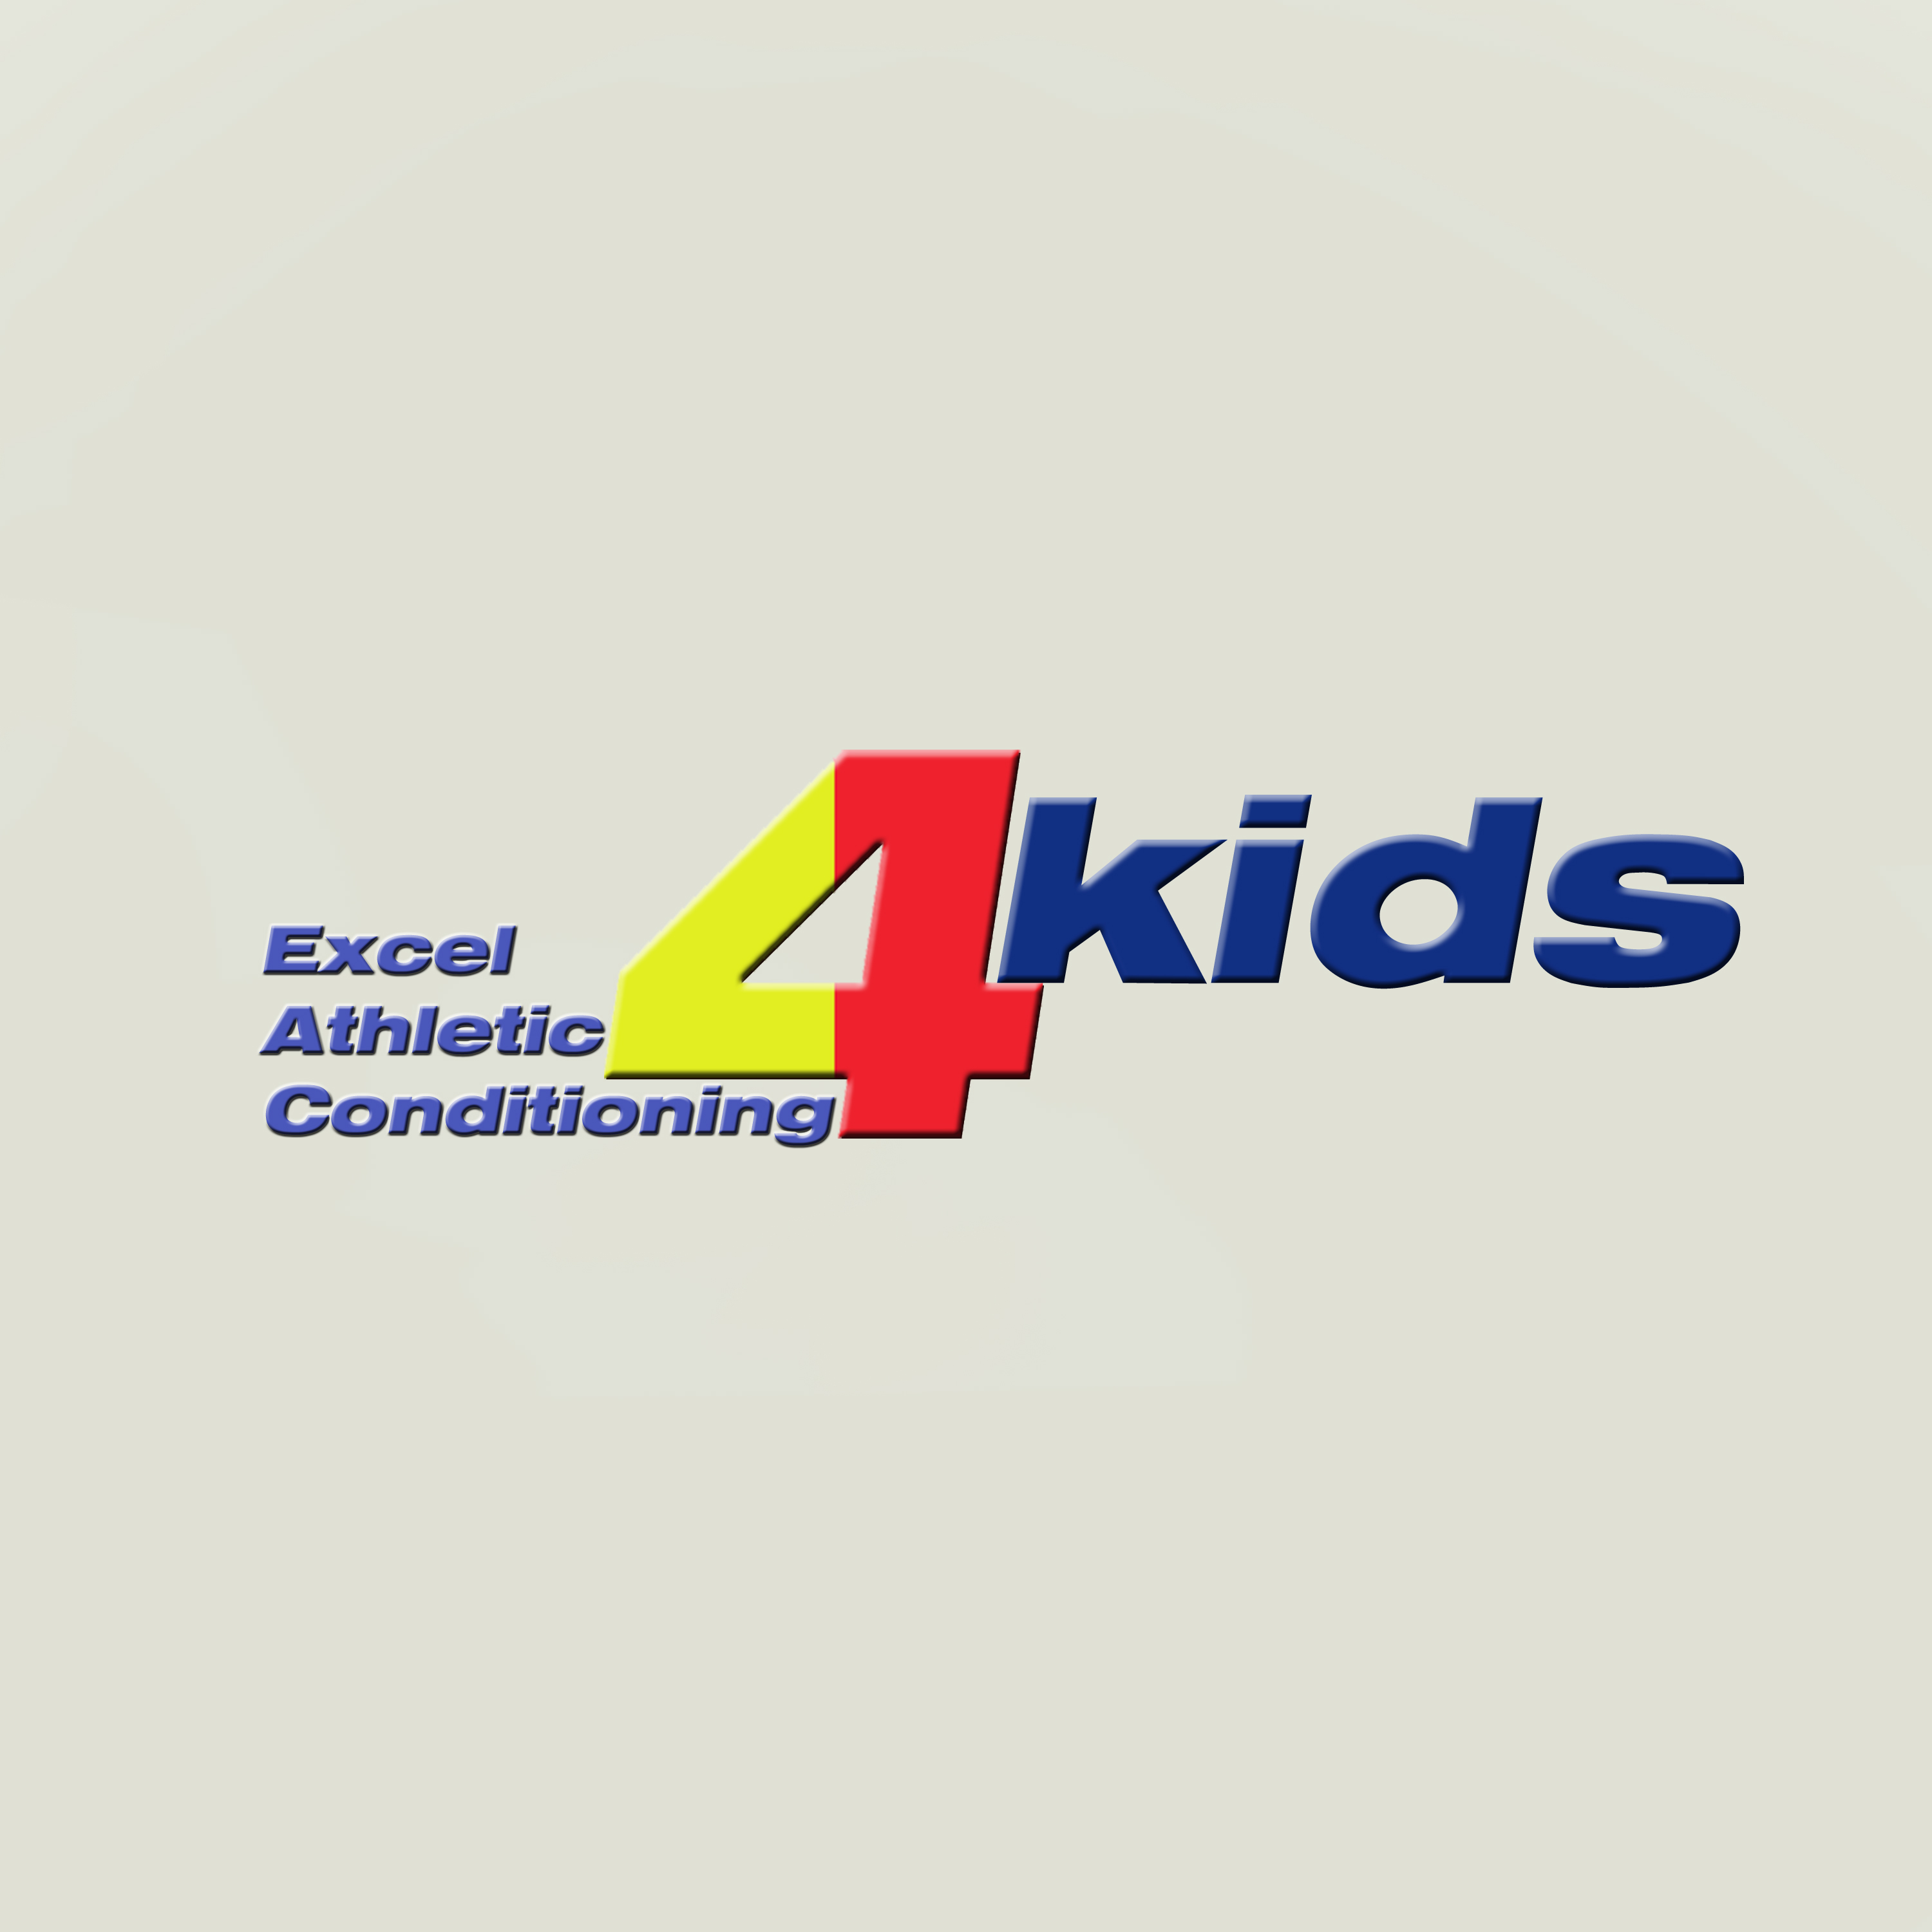 Logo Design by Roberto Sibbaluca - Entry No. 10 in the Logo Design Contest Artistic Logo Design for Excel Athletic Conditioning 4 kids.